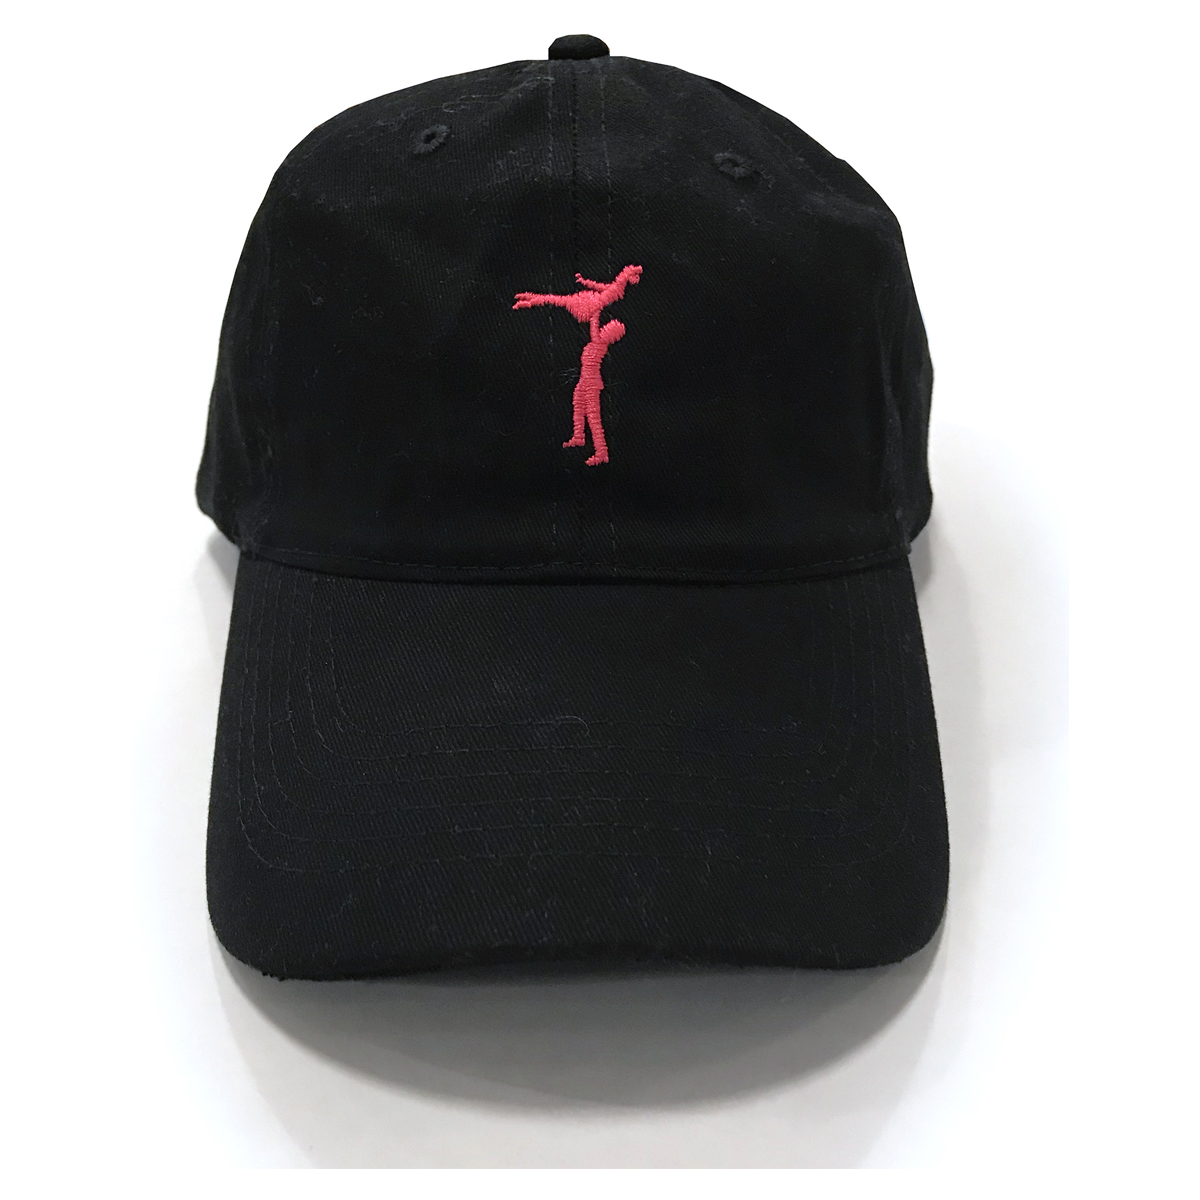 Dirty Dancing Lift Hat